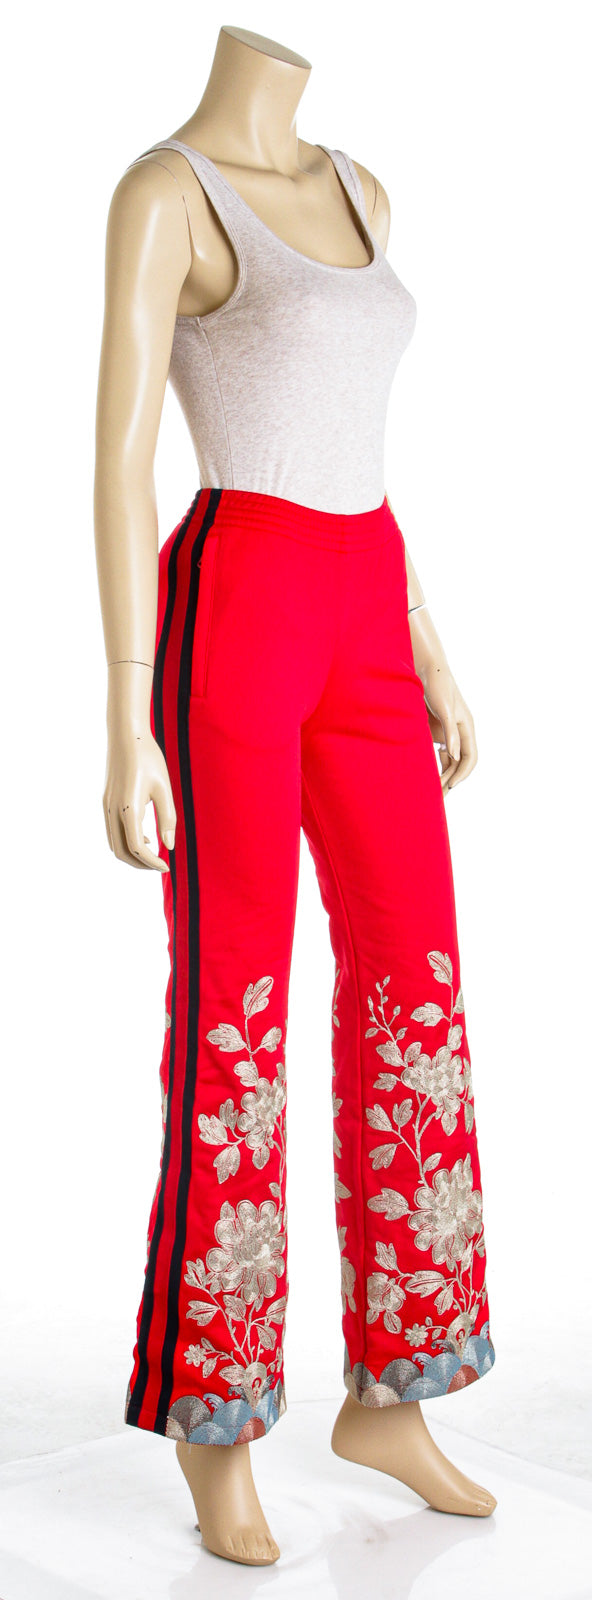 Gucci Red Floral Embroidered Jogger Tech Pants Size XS NEW